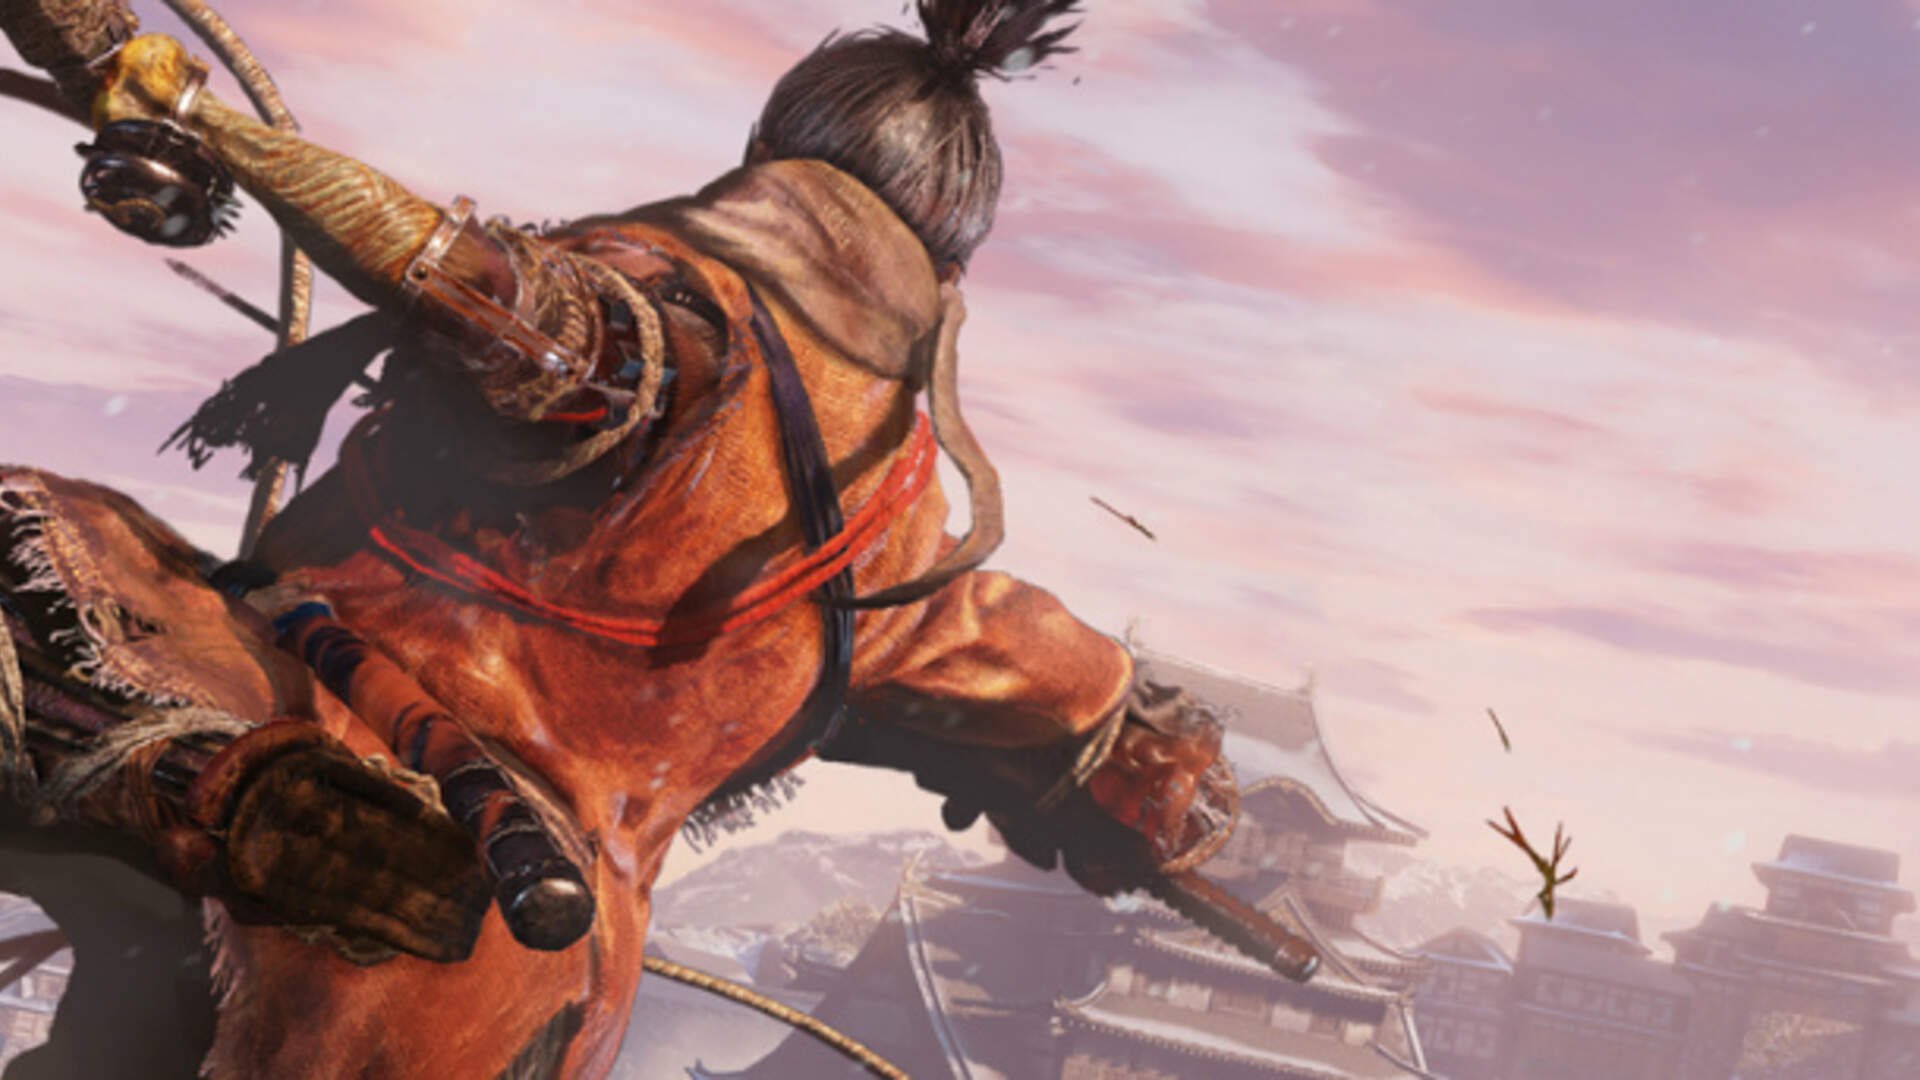 Leveling in Sekiro Works Very Differently Than in Dark Souls